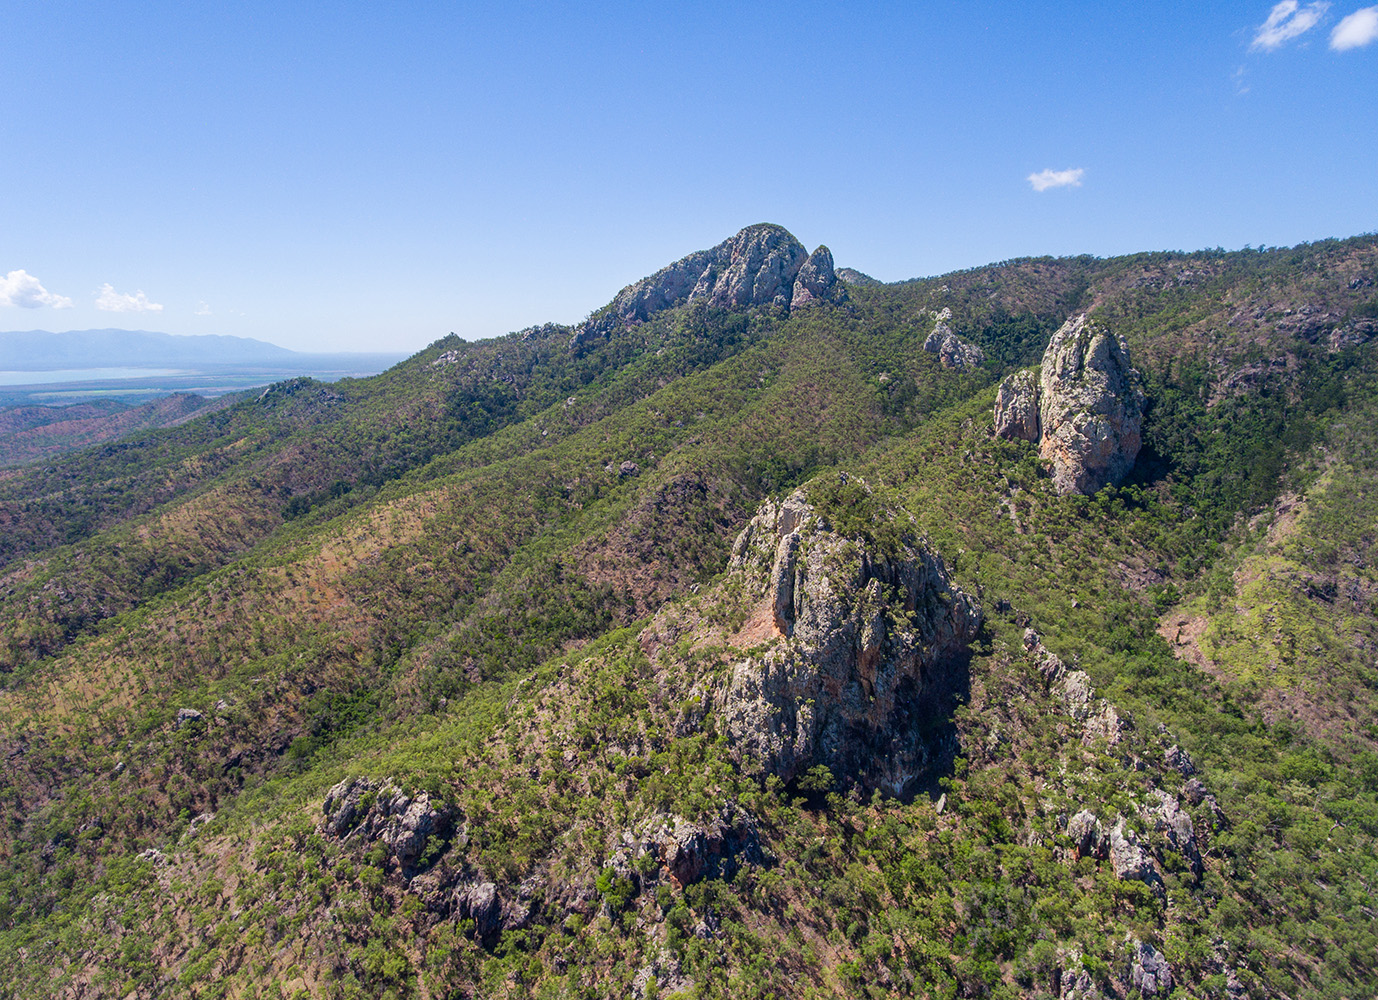 Frederick Peak pinnacles